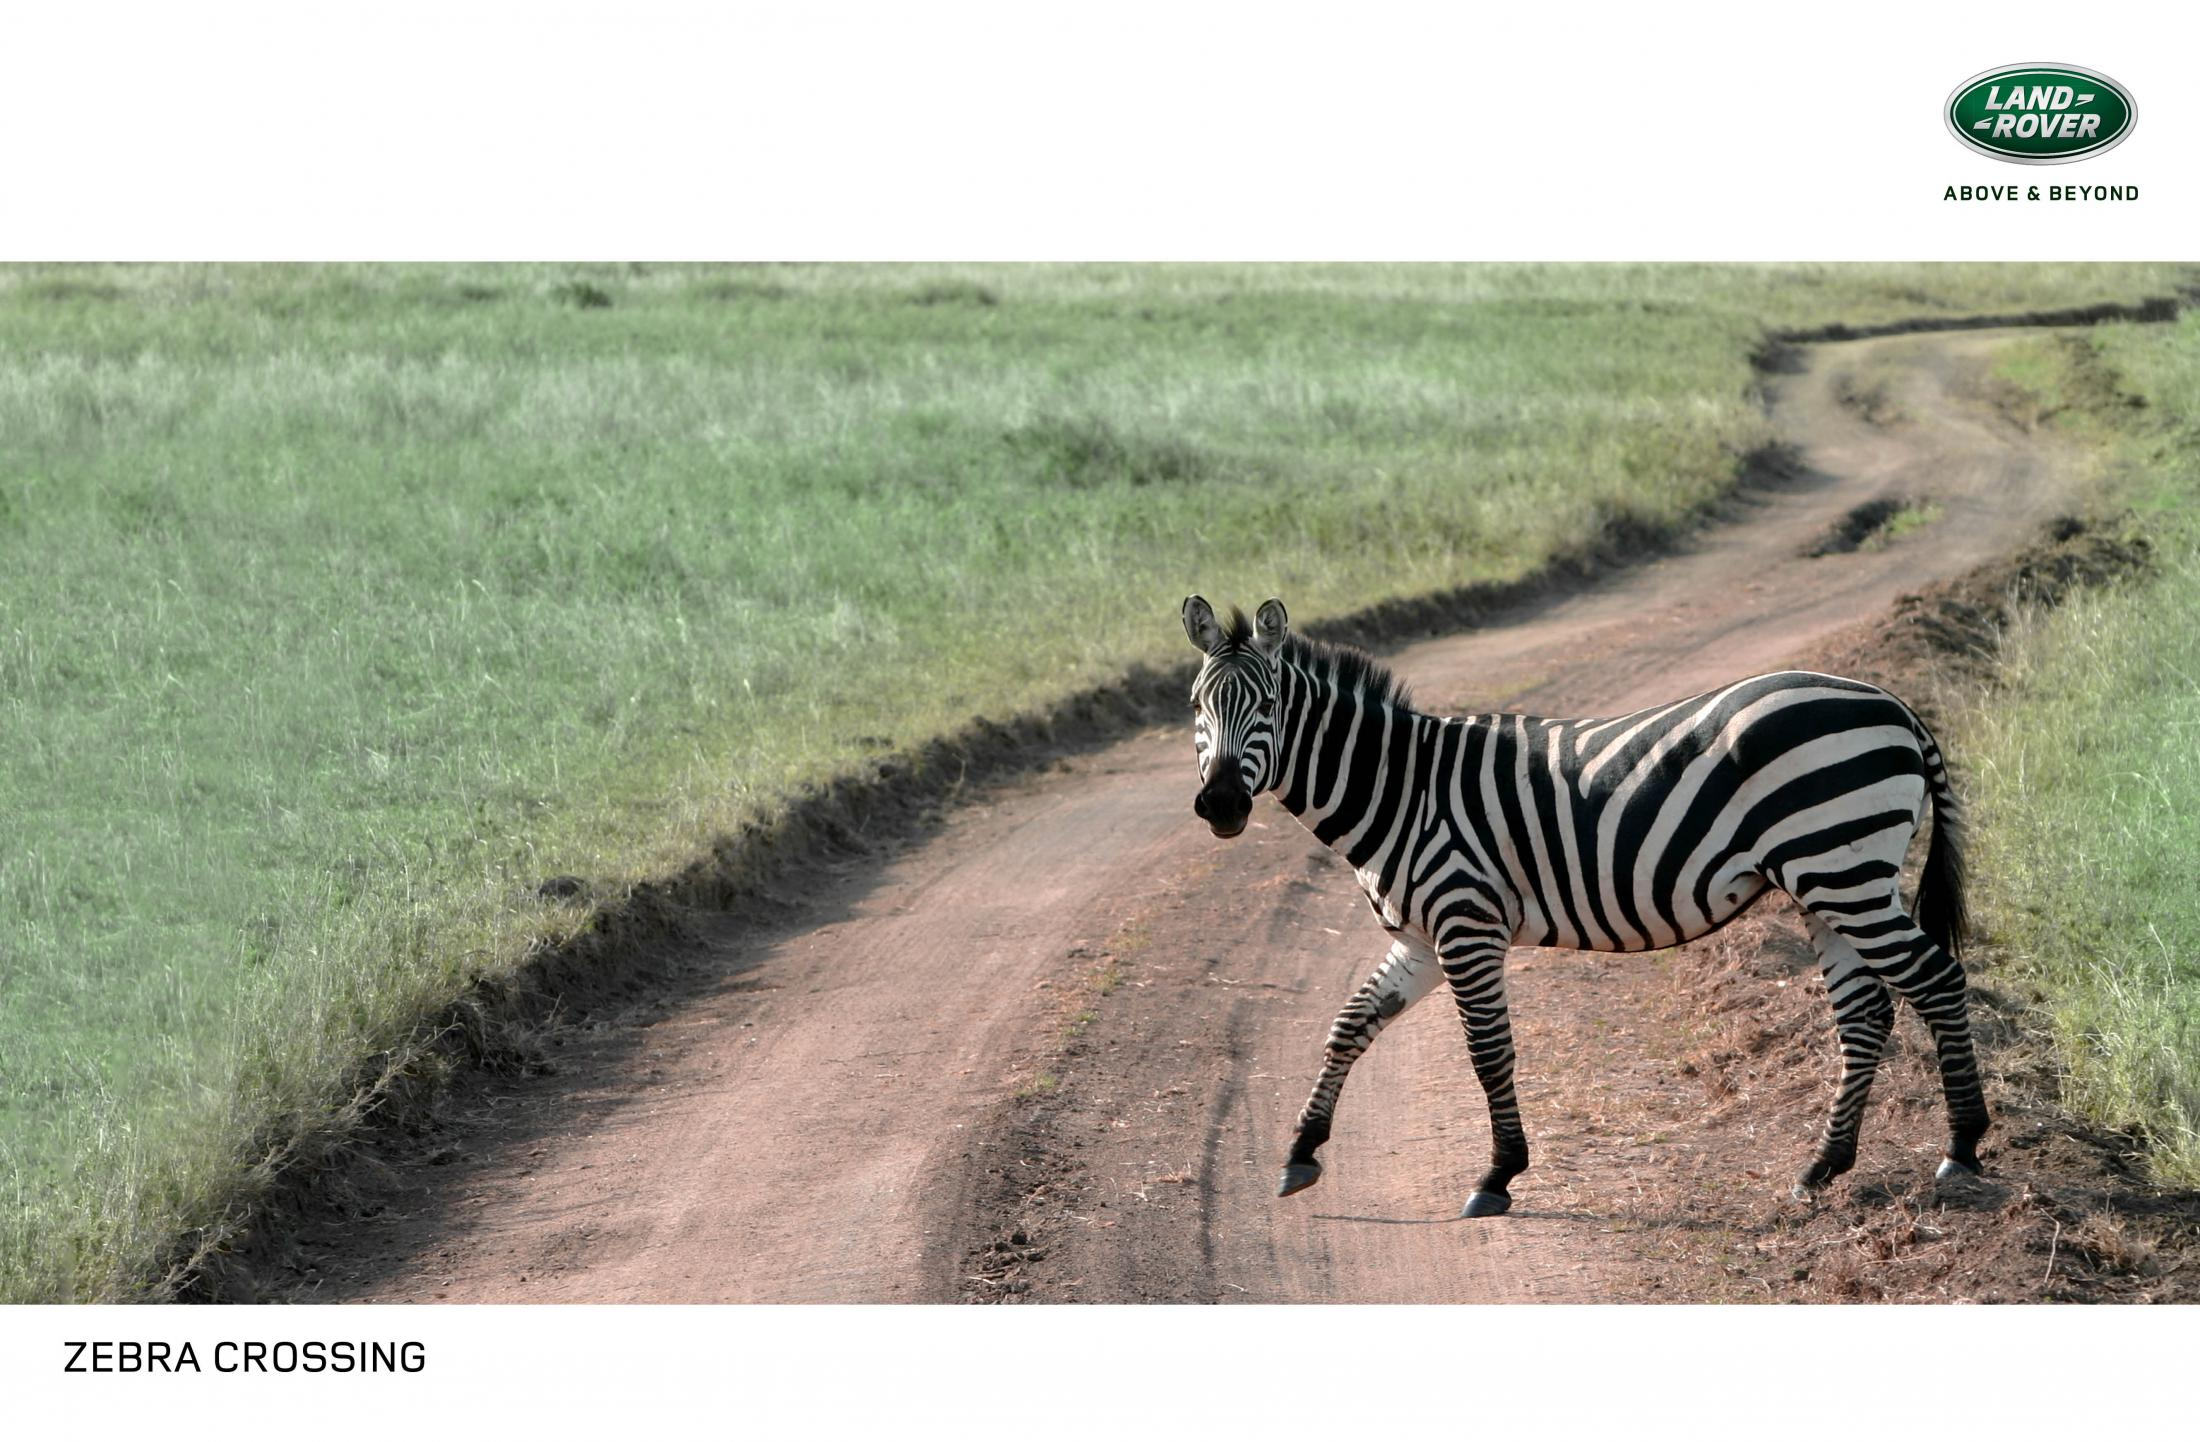 zebra_crossing_0.jpg